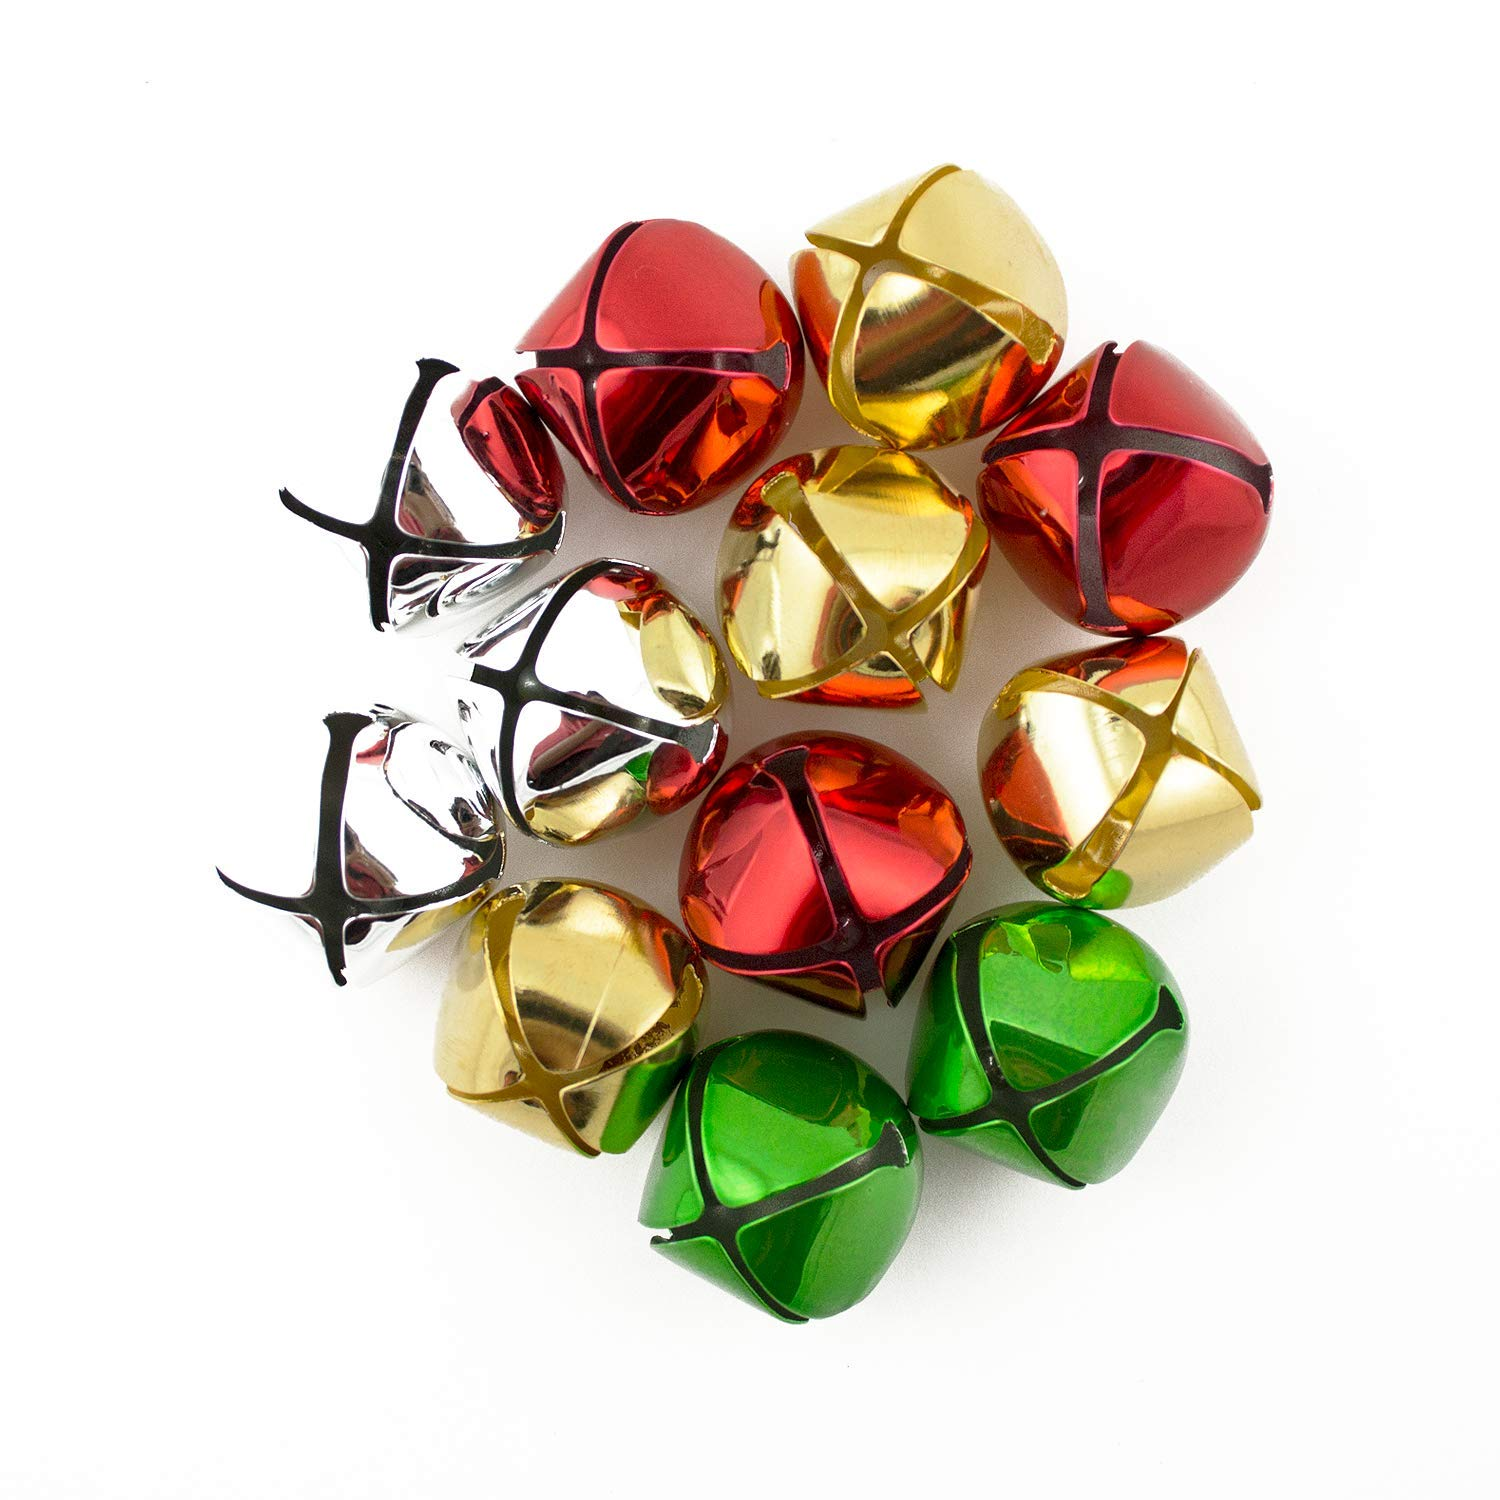 1 inch 25mm Gold Silver Red Green Mix Large Craft Jingle Bells Bulk 144 Pieces by Art Cove (Image #2)